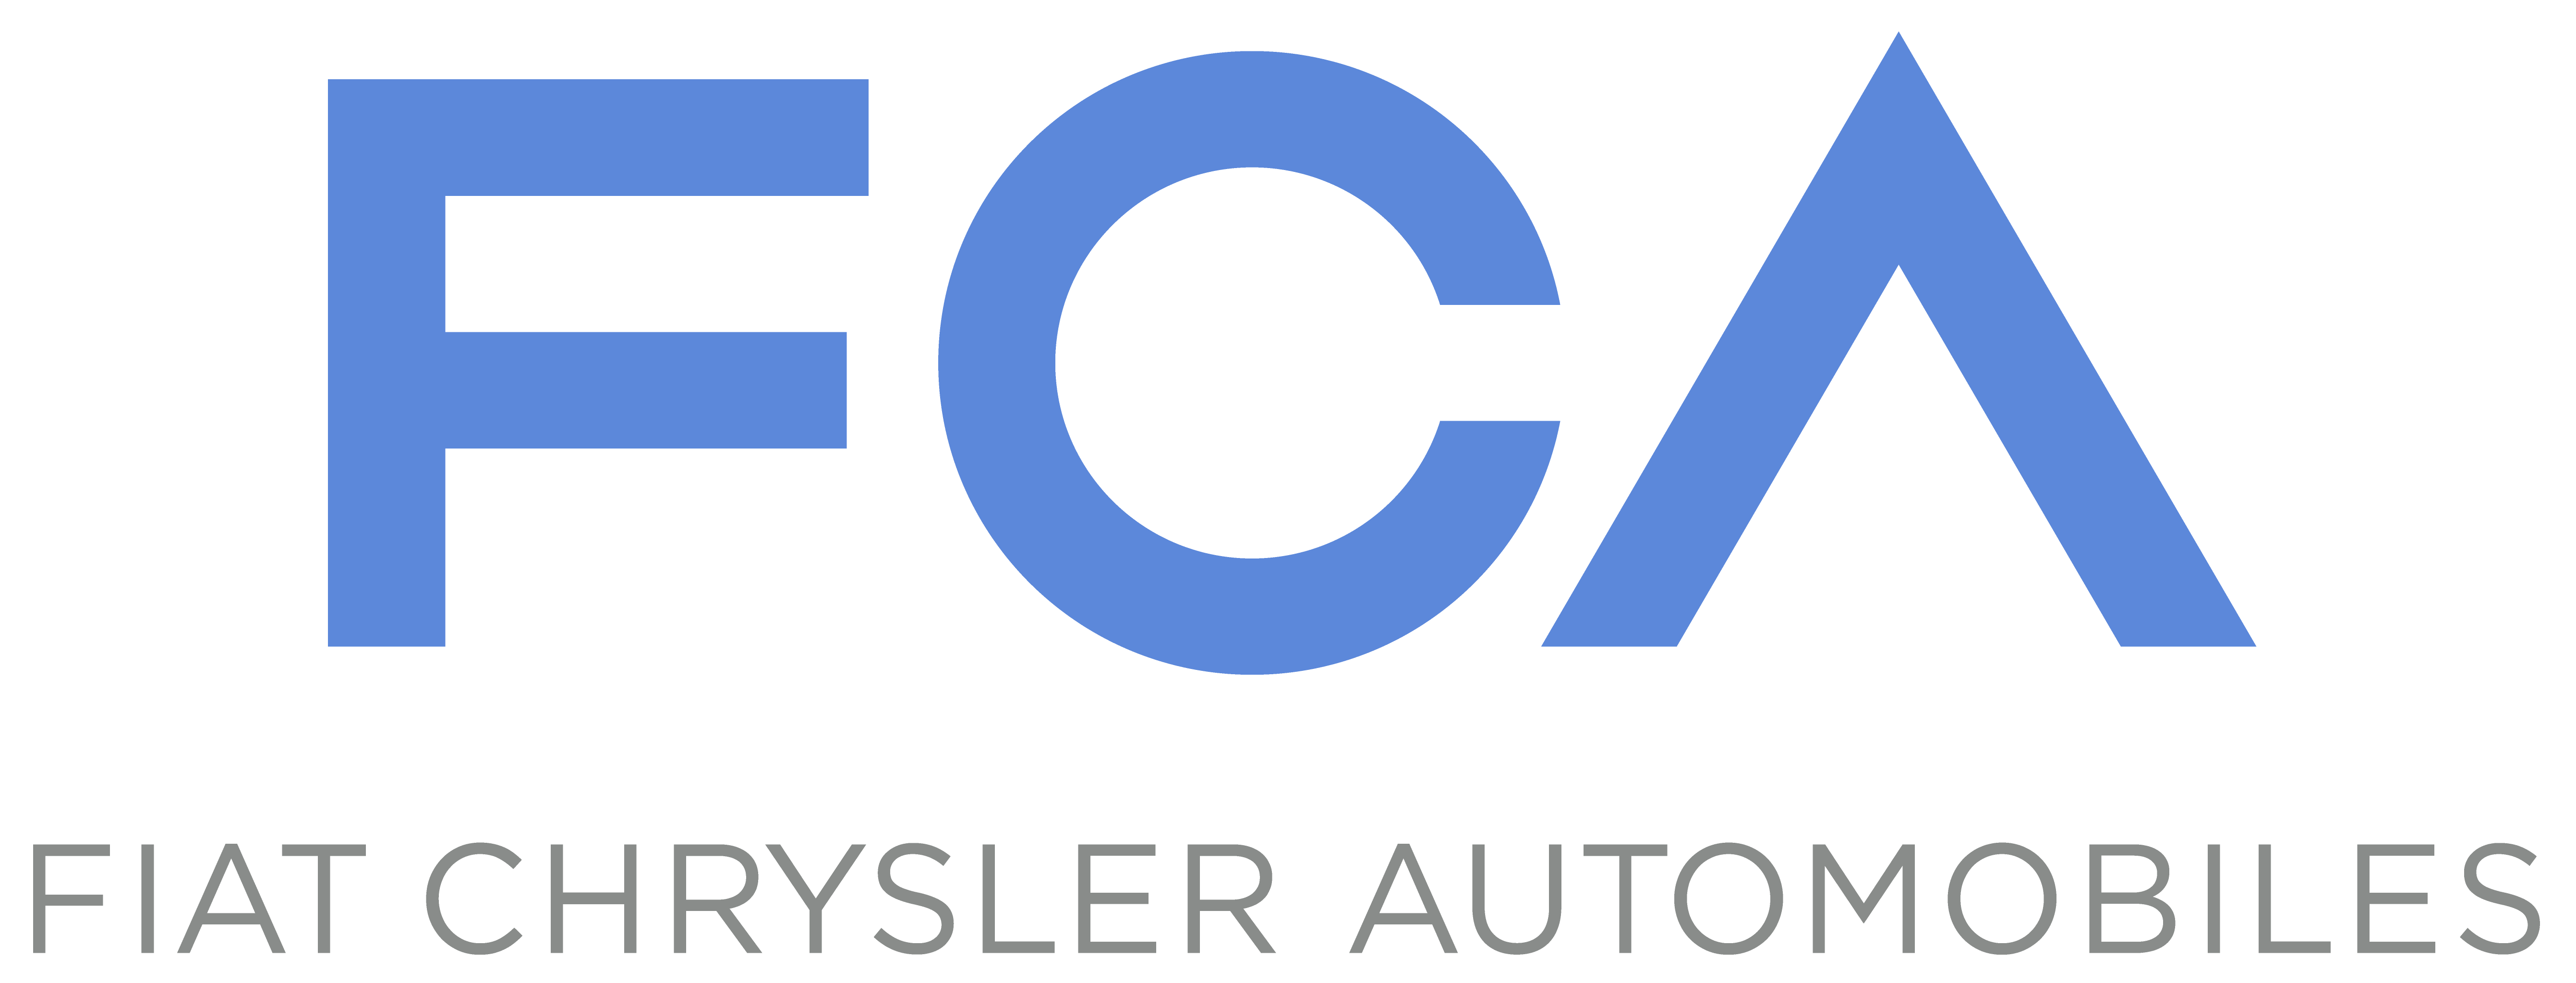 Ford · FCA Group - Volkswagen Group Logo Vector PNG